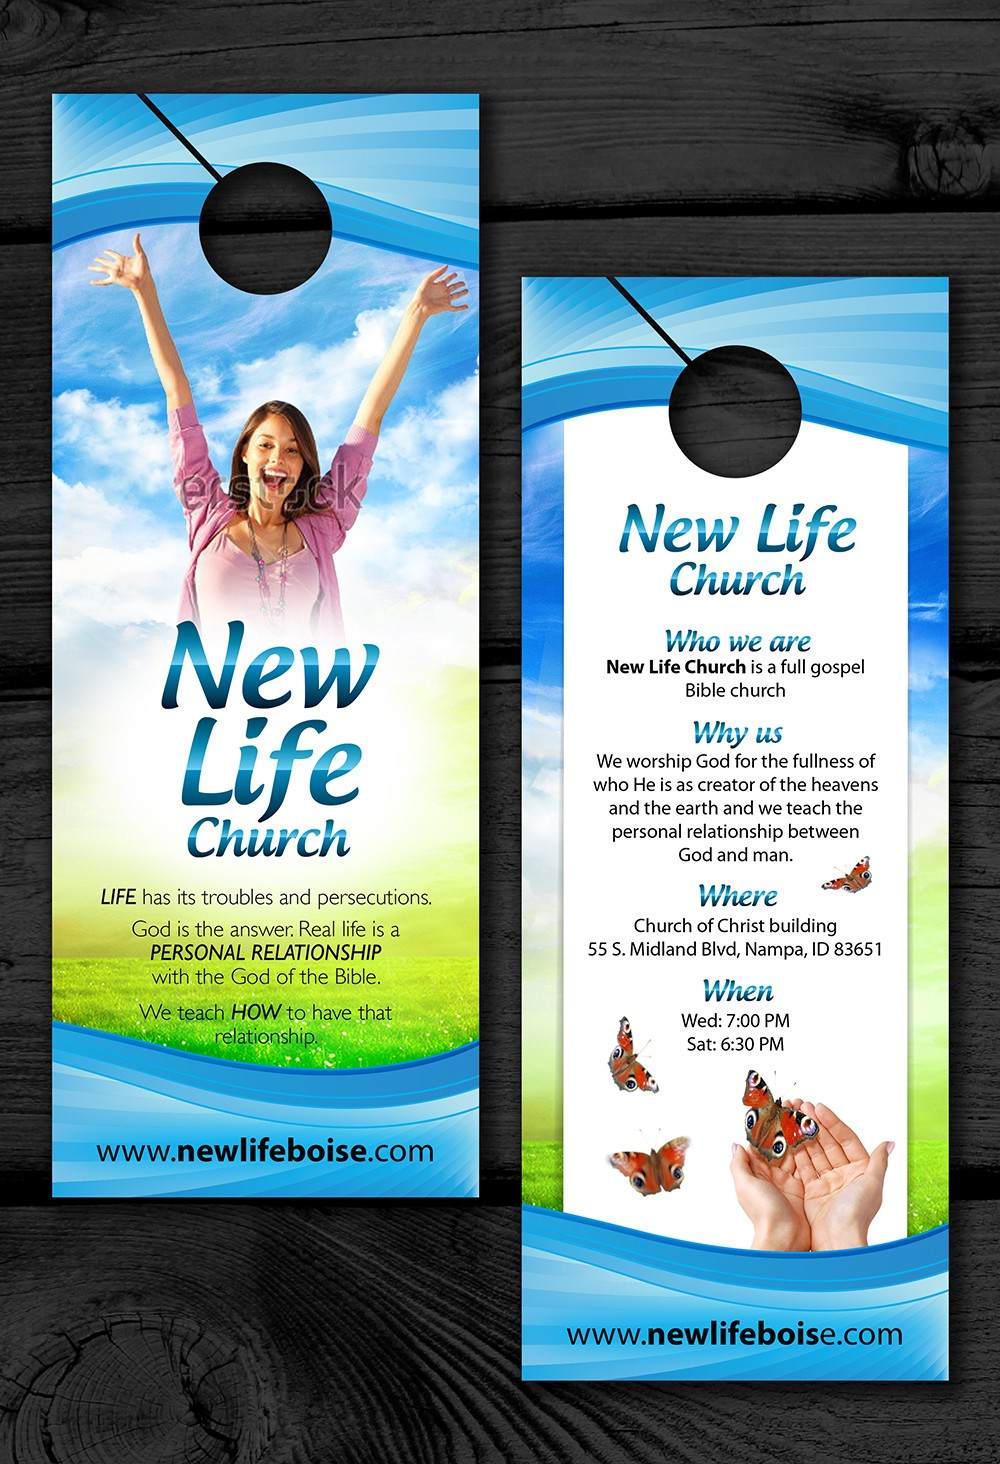 New Life Church needs a new postcard or flyer